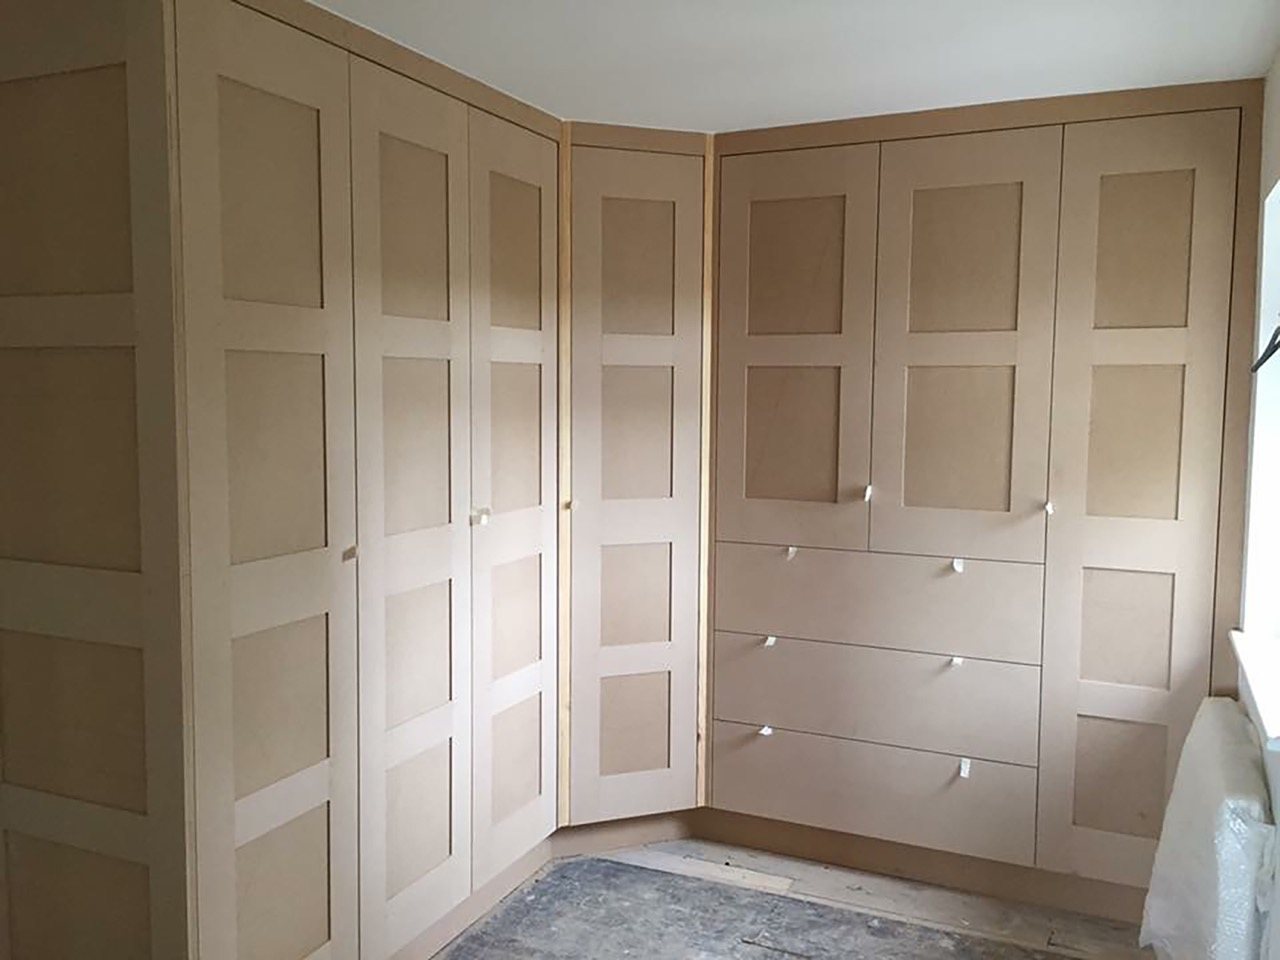 stuart-heather-carpentry-joinery-sussex-surrey-5